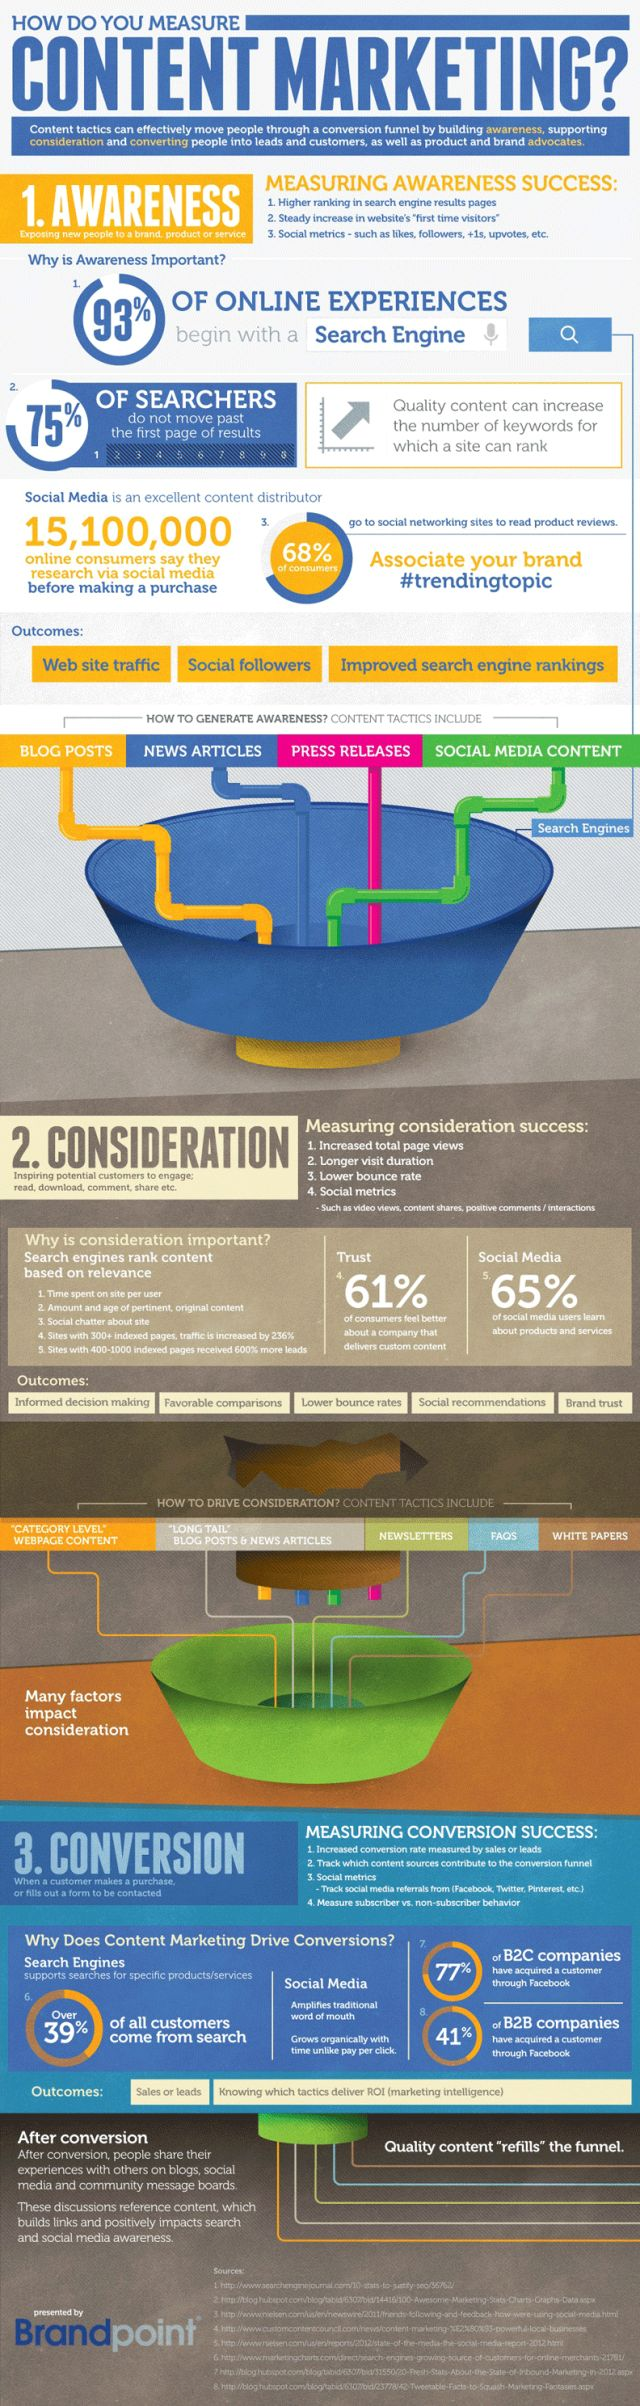 How do you measure content marketing #infografia #infographic #marketing